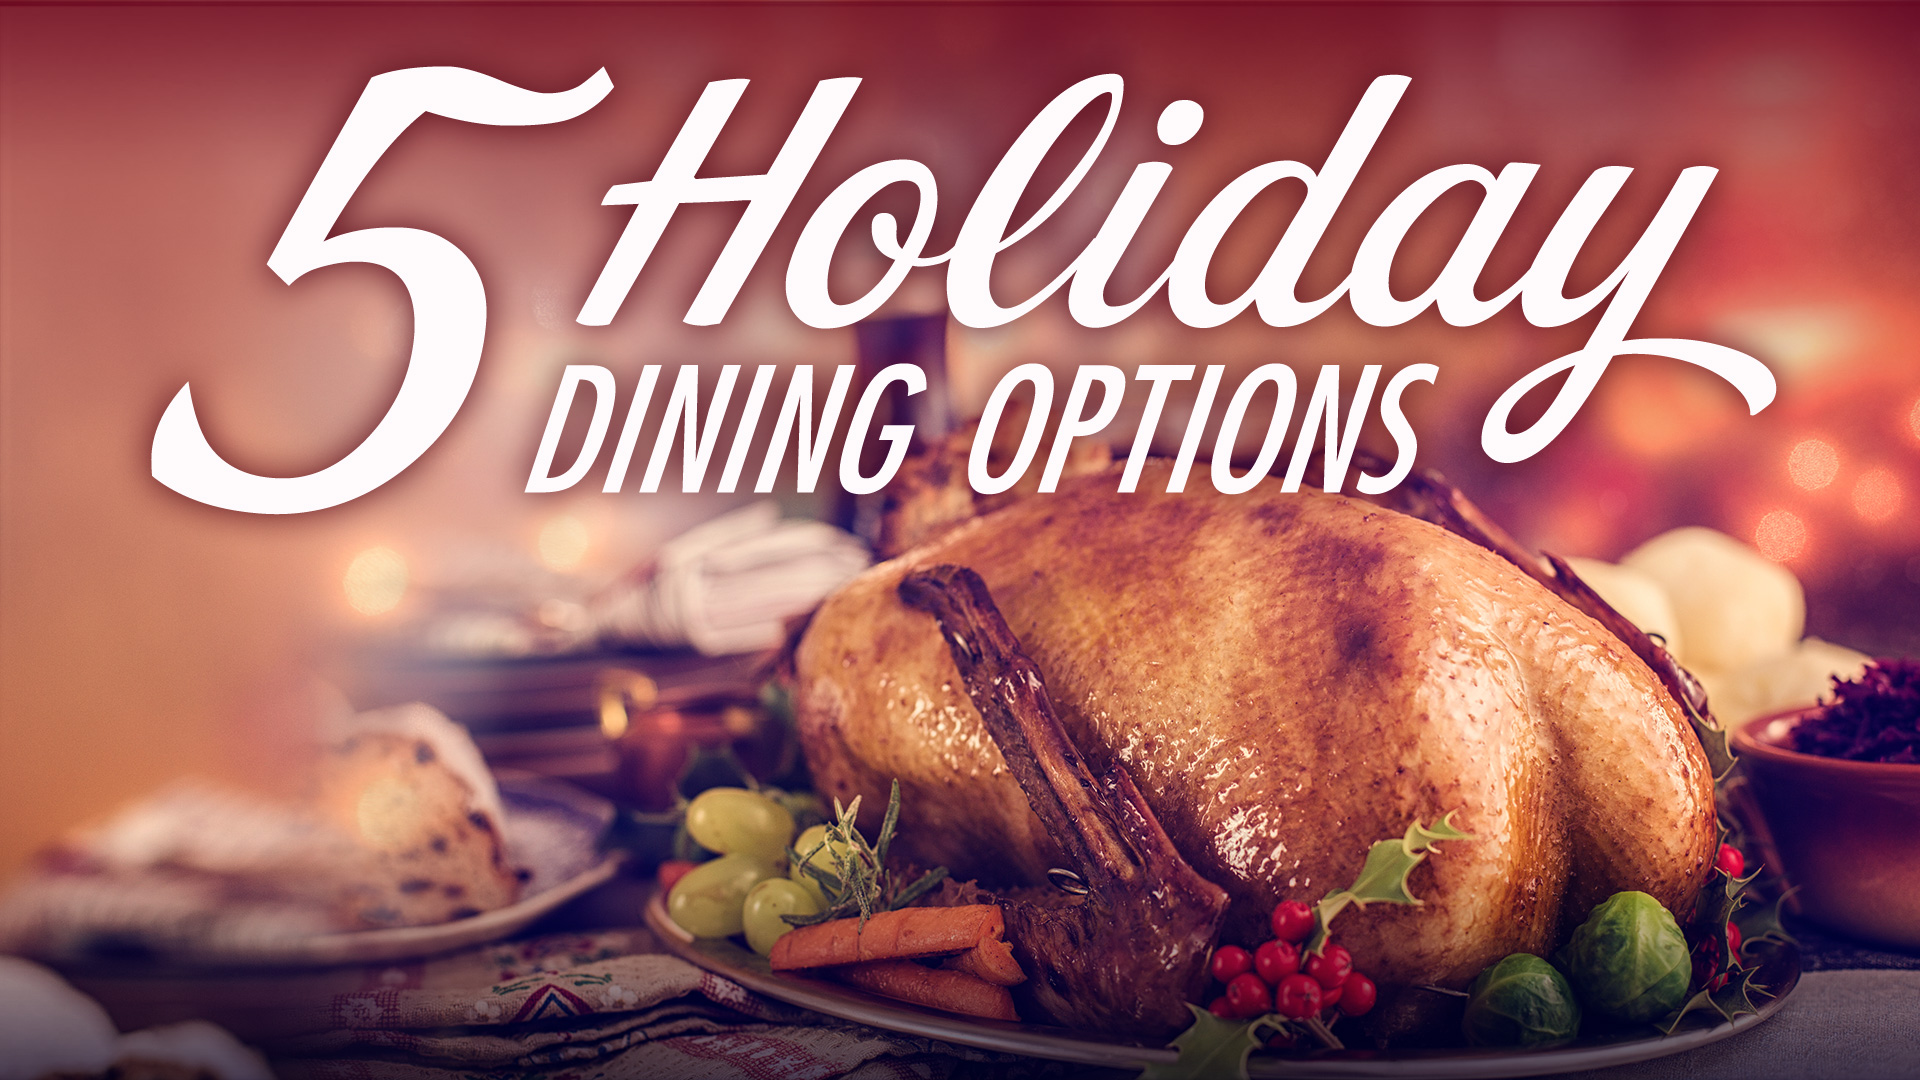 5 Holiday Dining Options